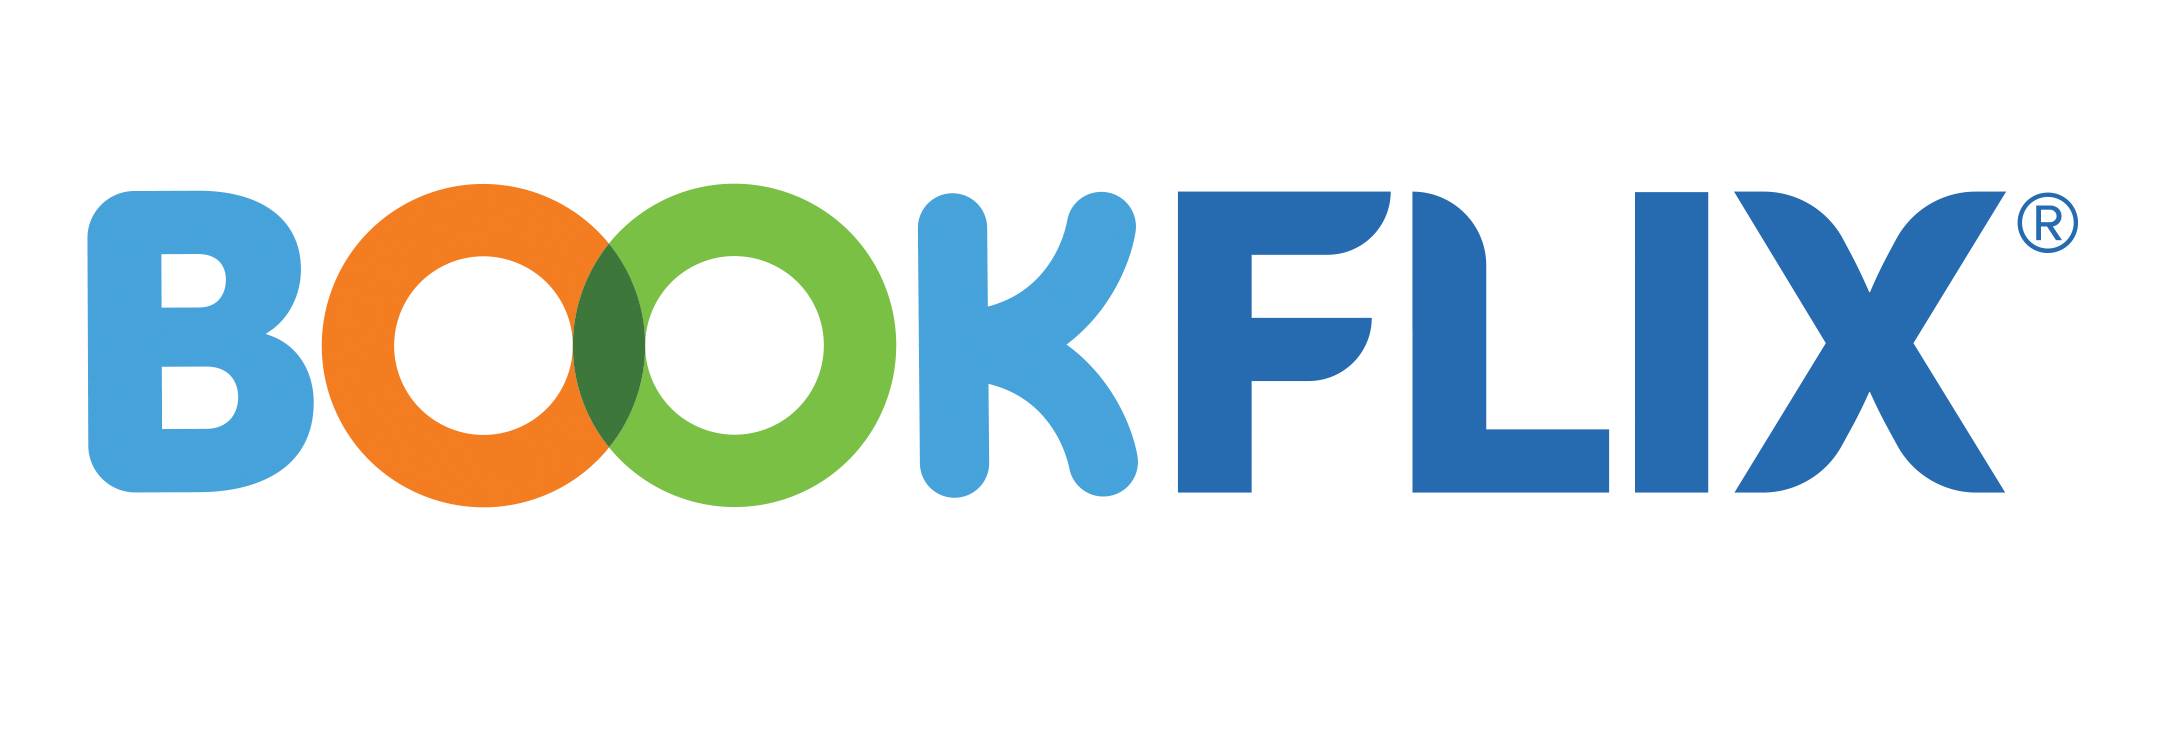 Image result for bookflix logo